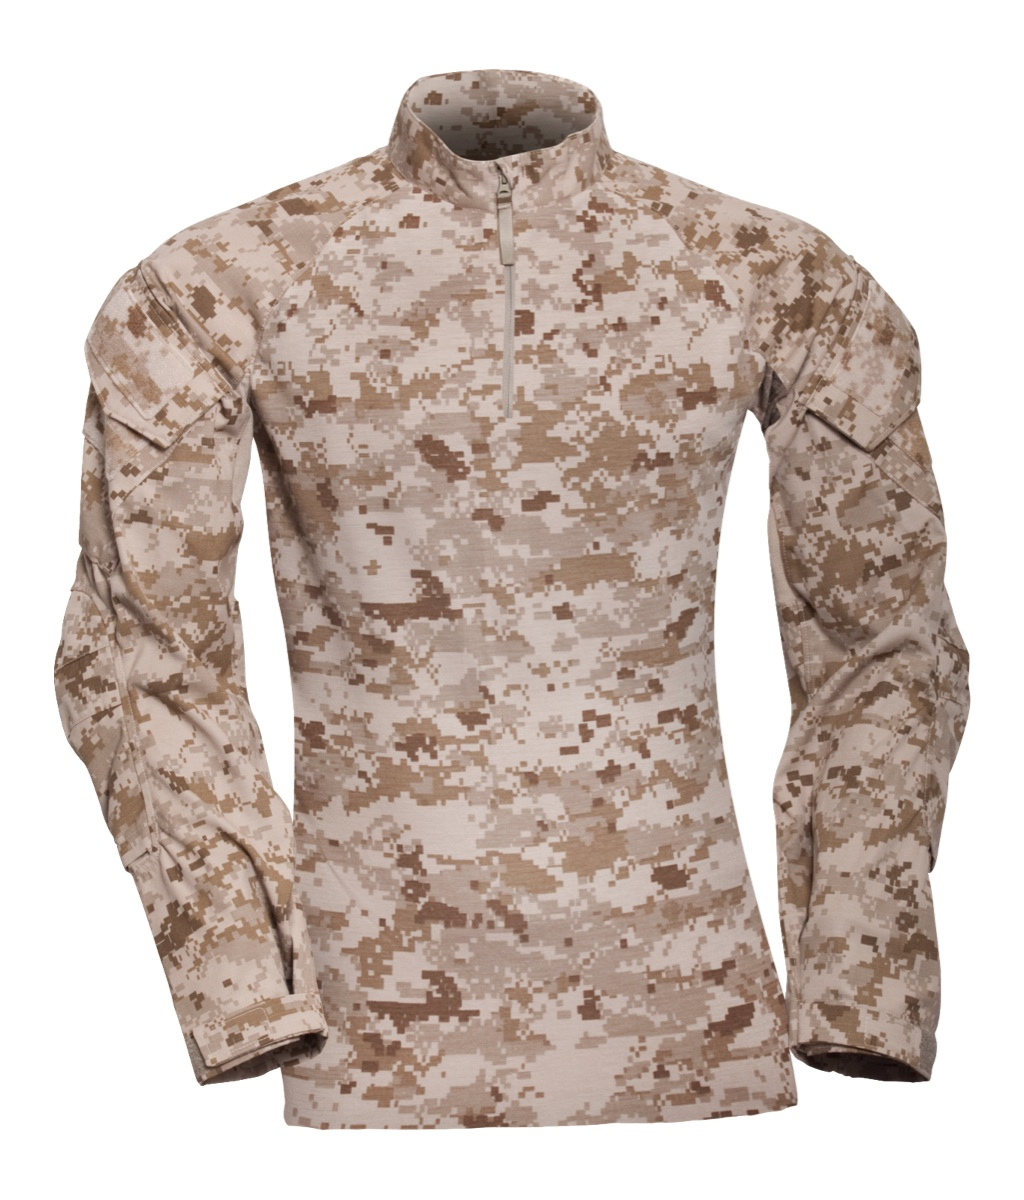 Special Operations Forces' Protective Combat Uniform Level 9 Shirt with Polartecr Power Dryr